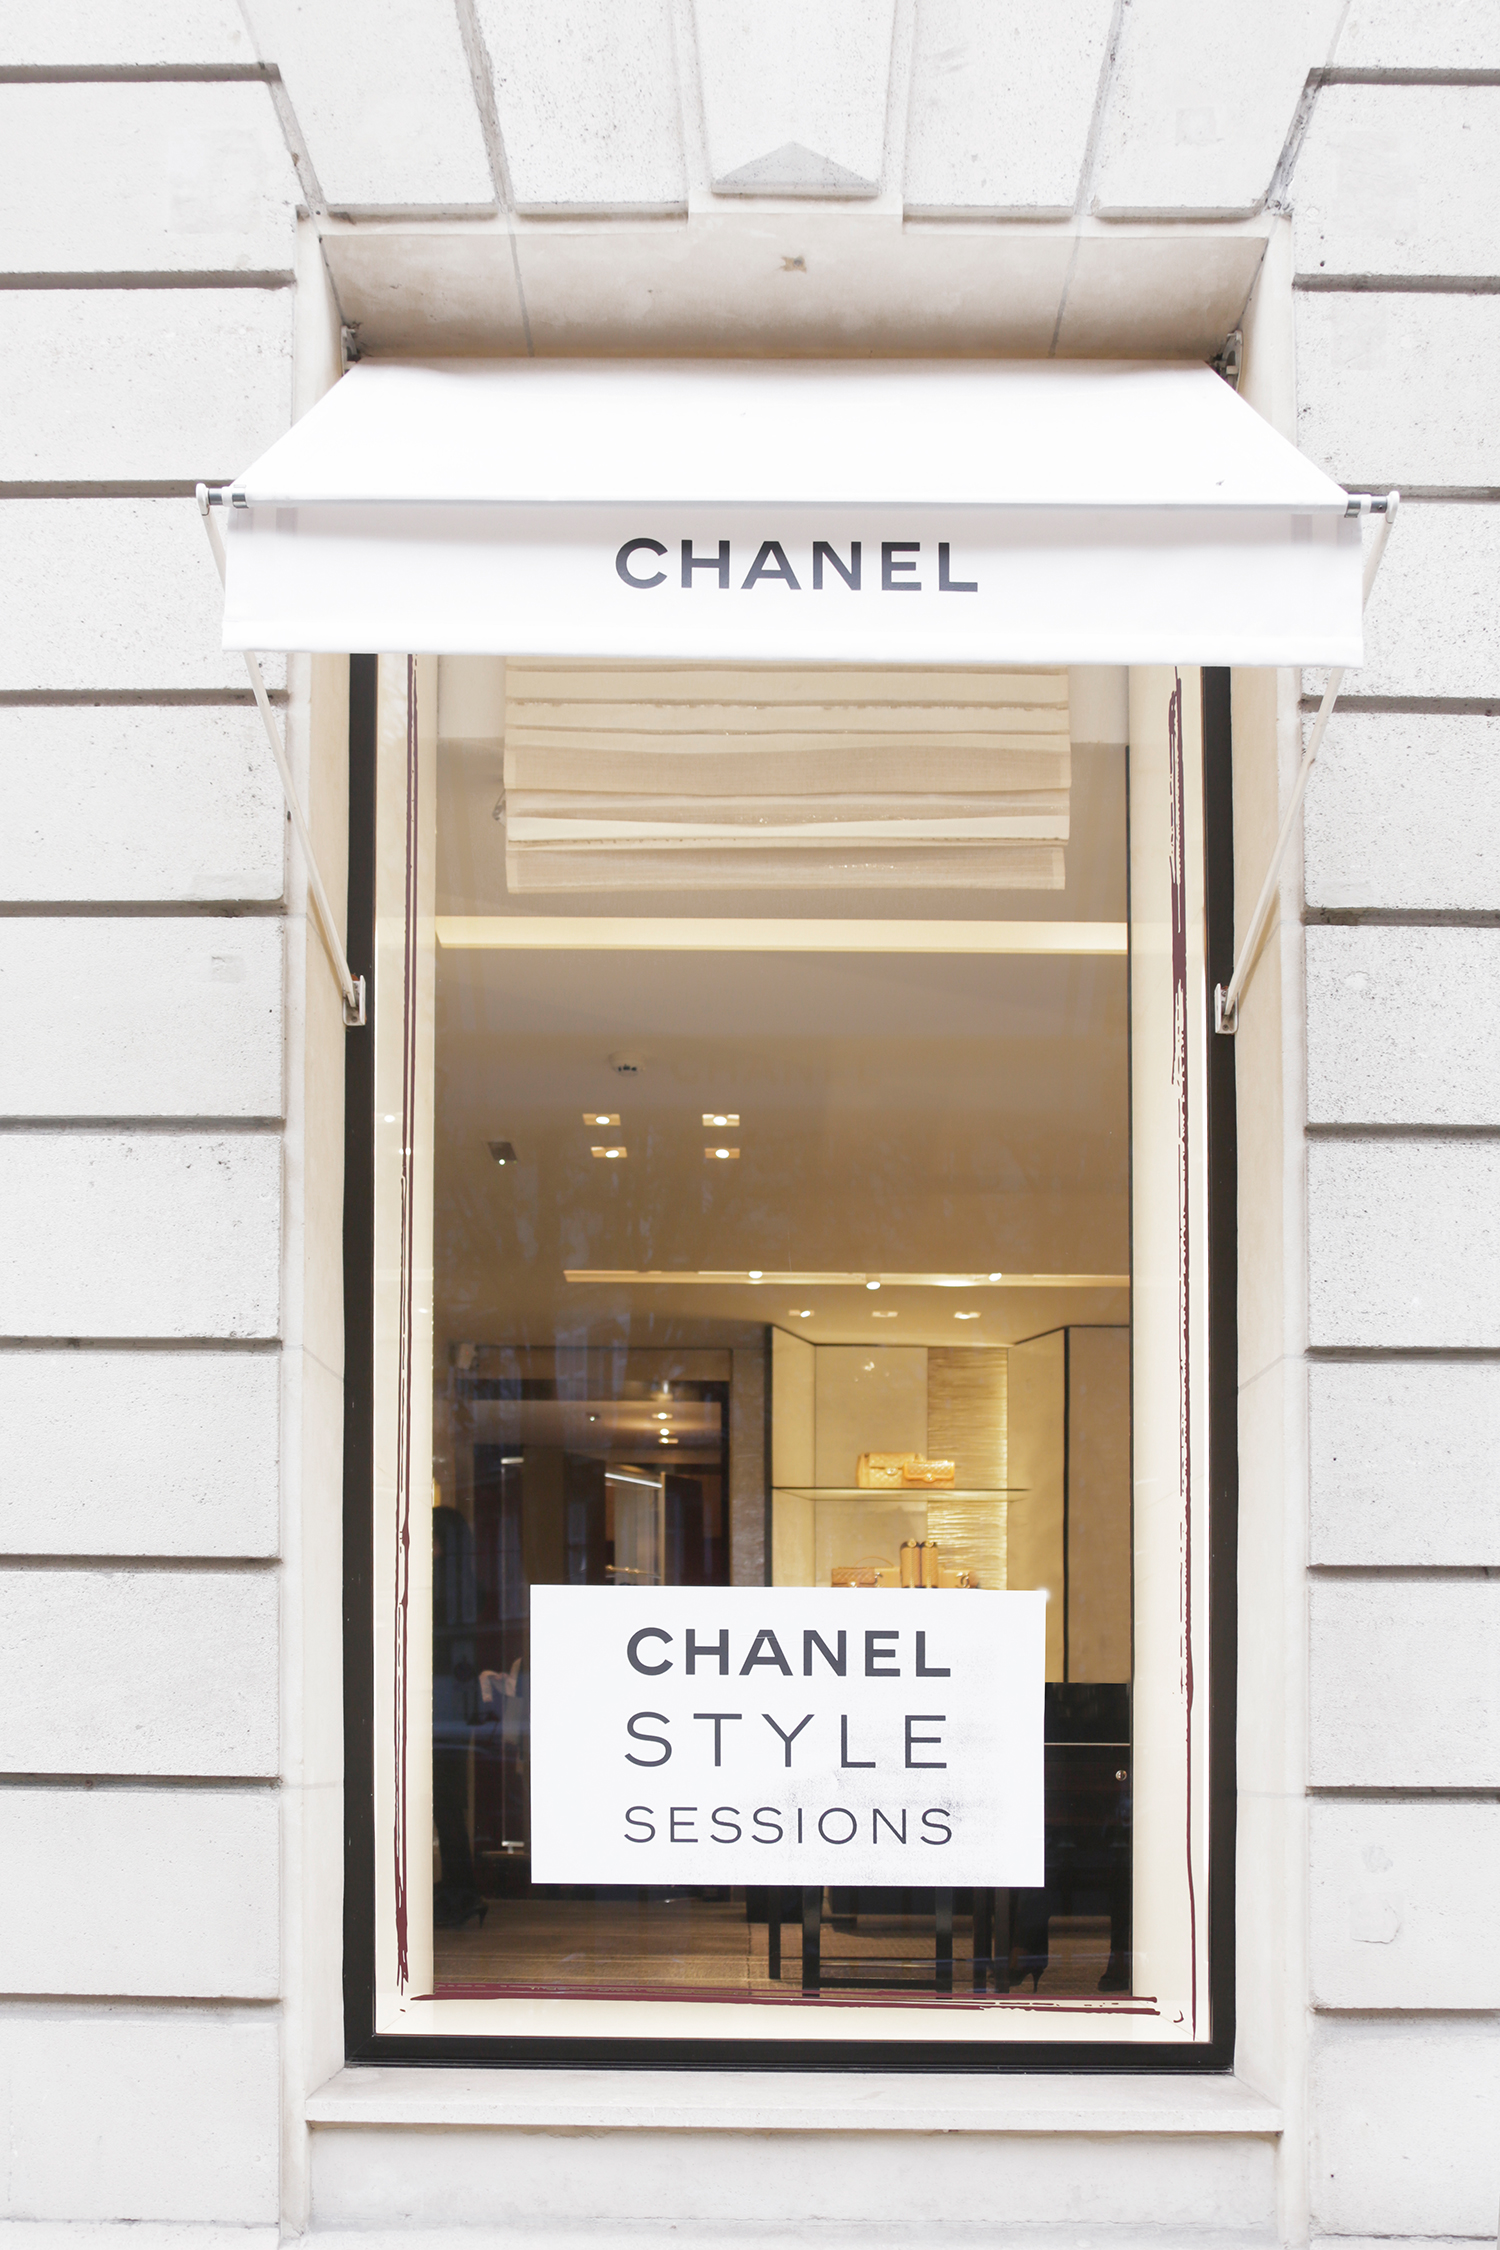 03_chanel-style-sessions-51-avenue-montaigne-boutique_ld